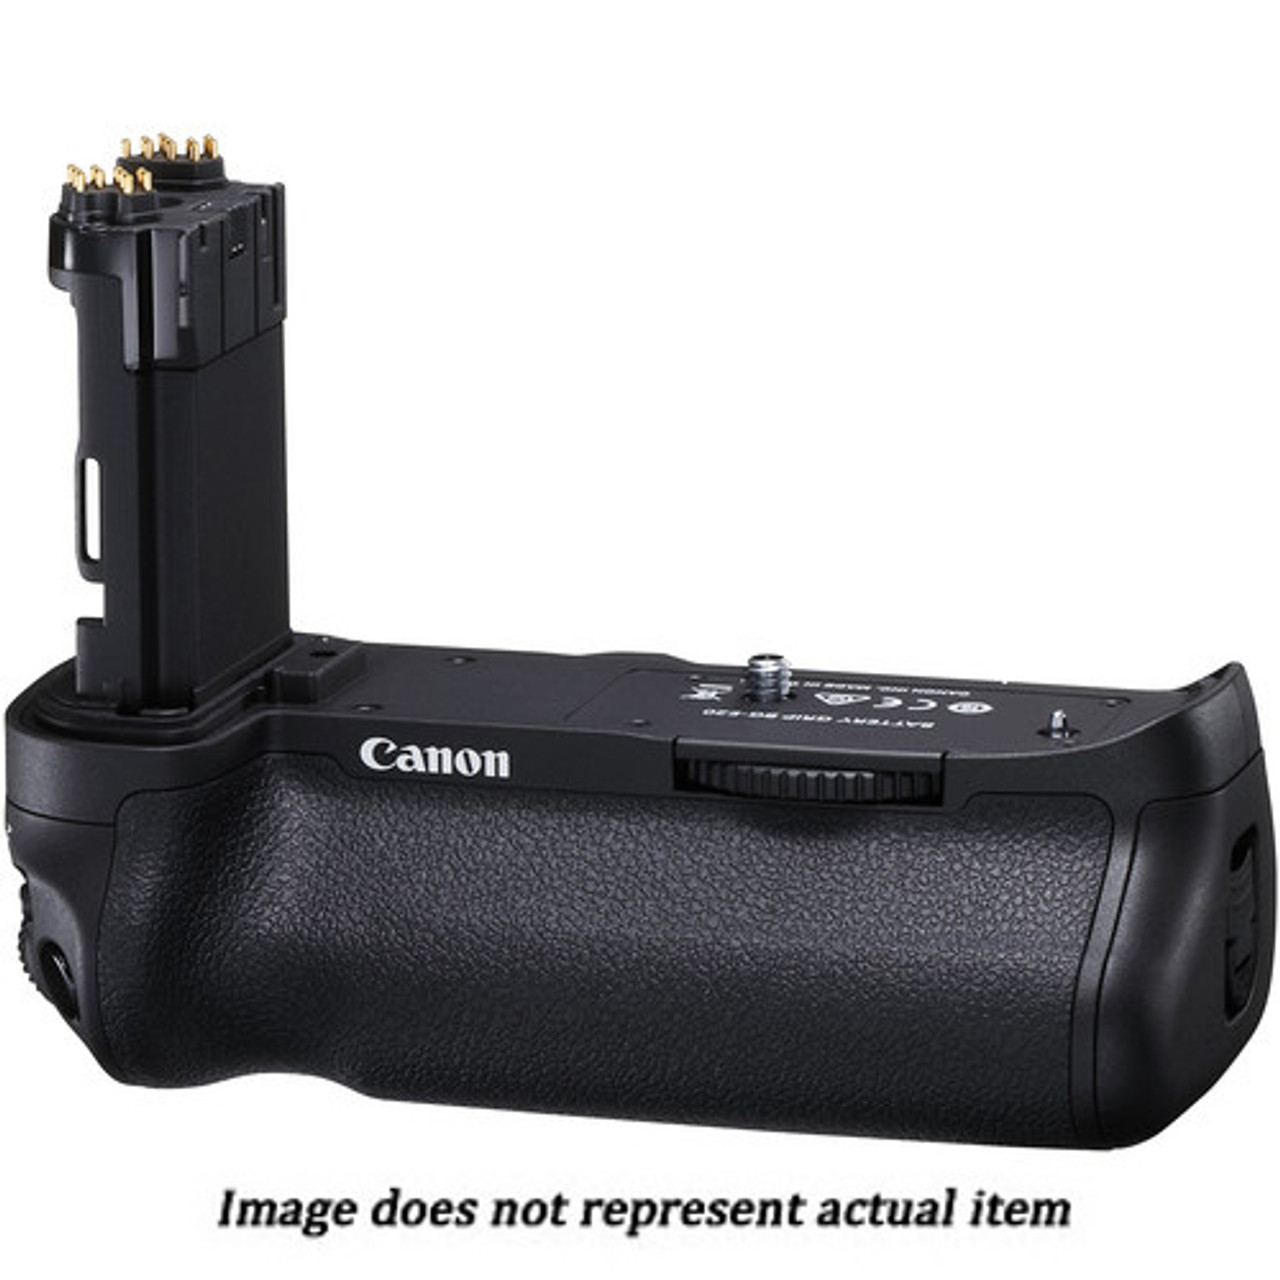 Canon BG-E20 Battery Grip for 5D Mark IV (USED) - S/N 270000482